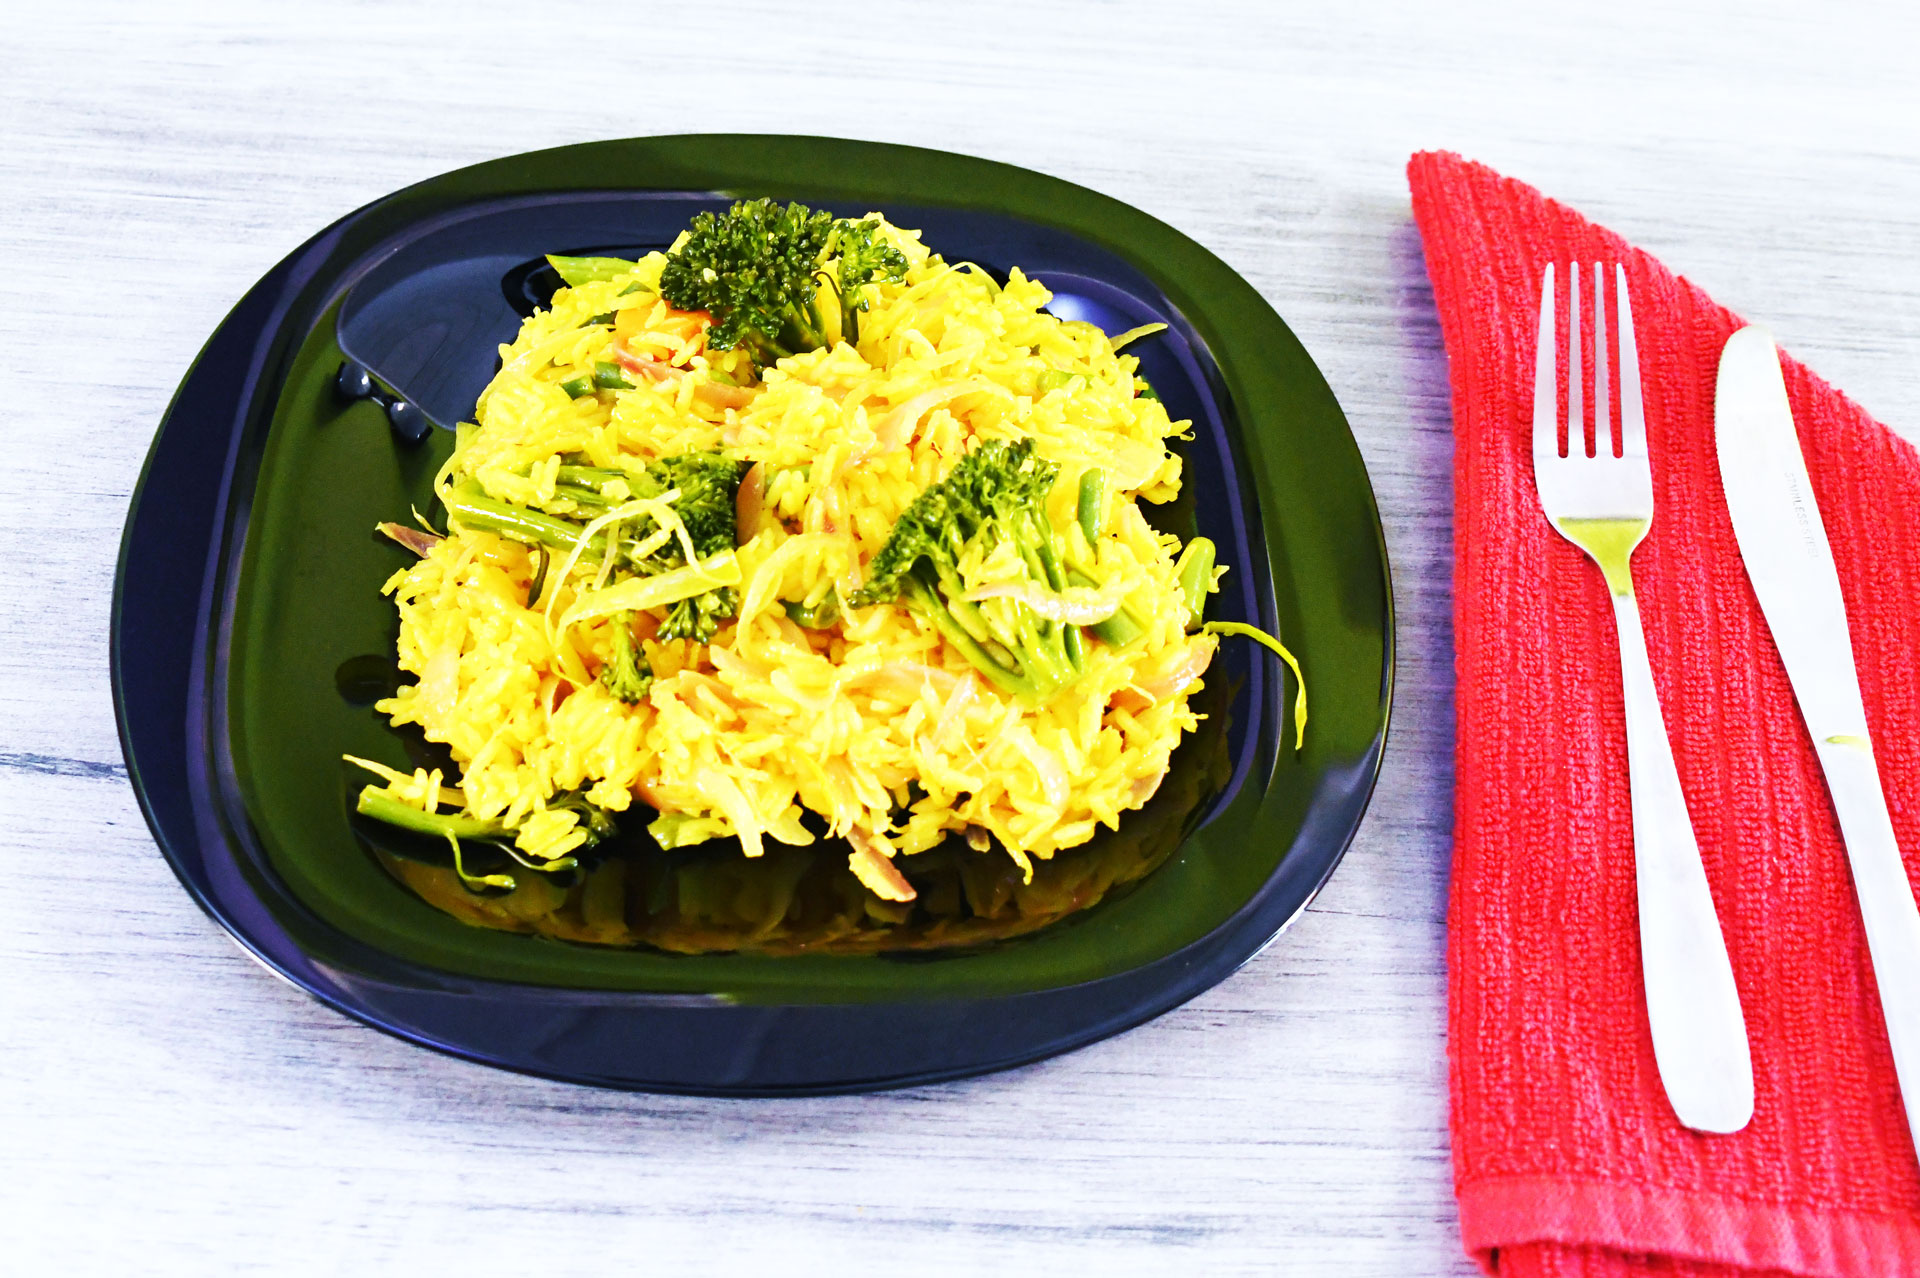 Lemon and Veg rice